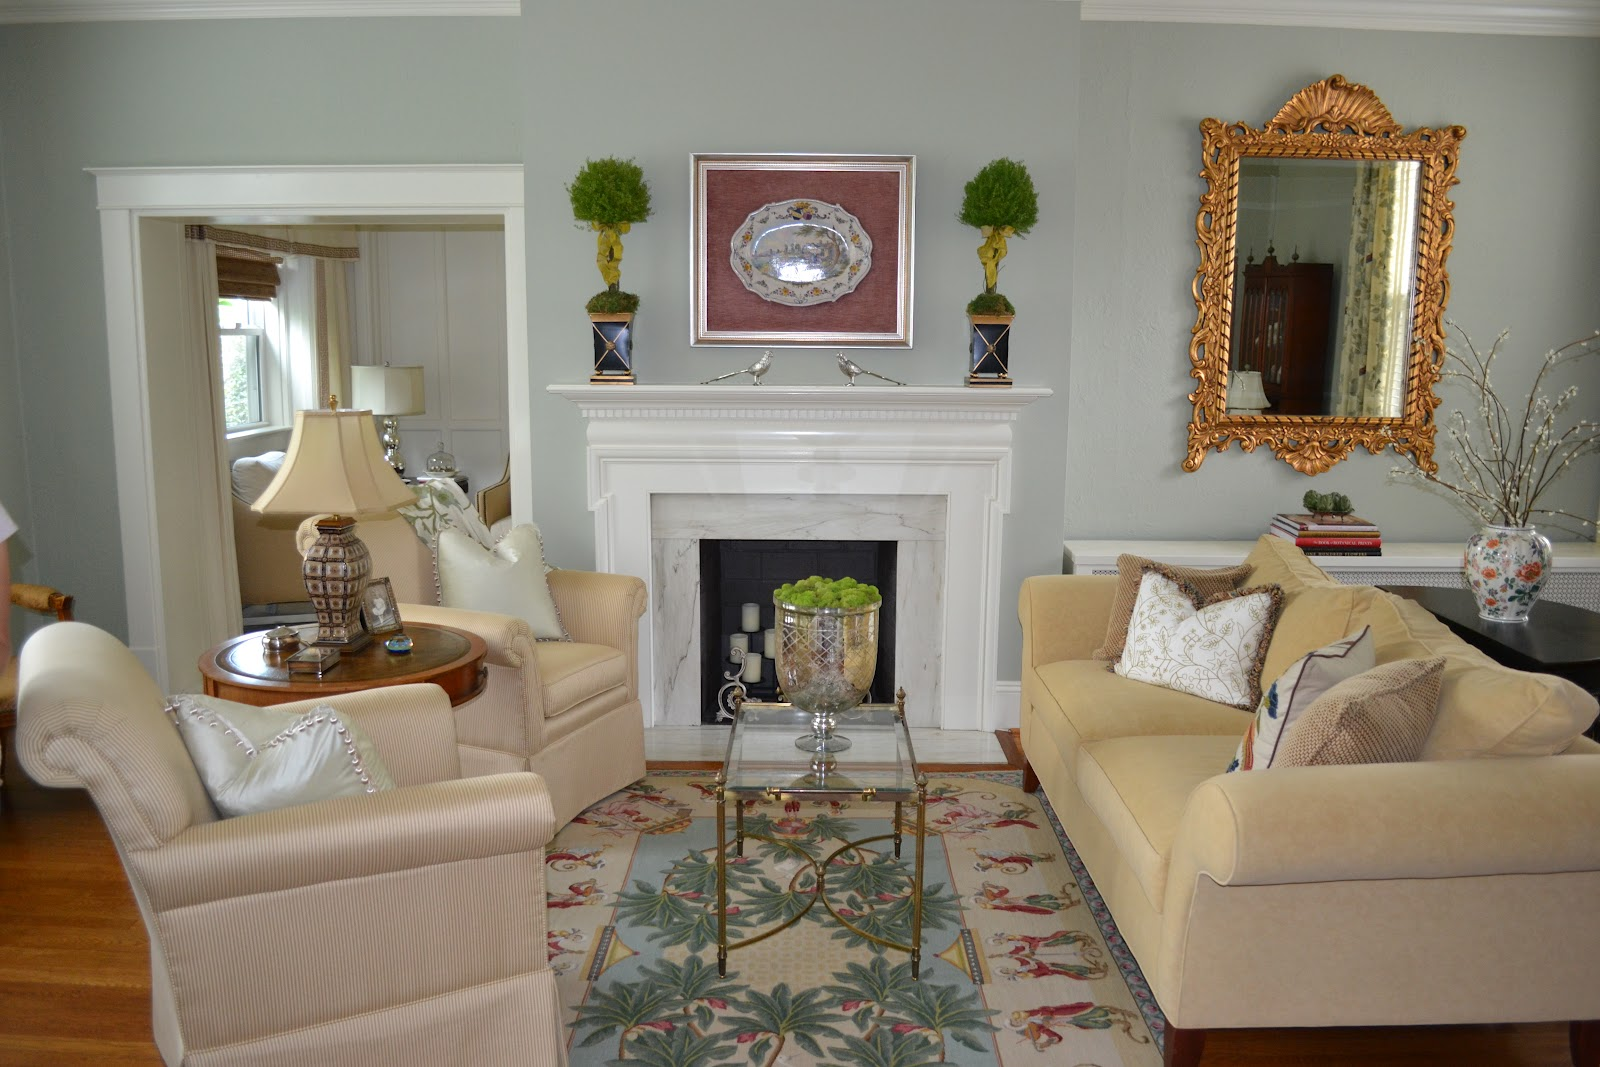 Small living room makeover before and after for Design makeover